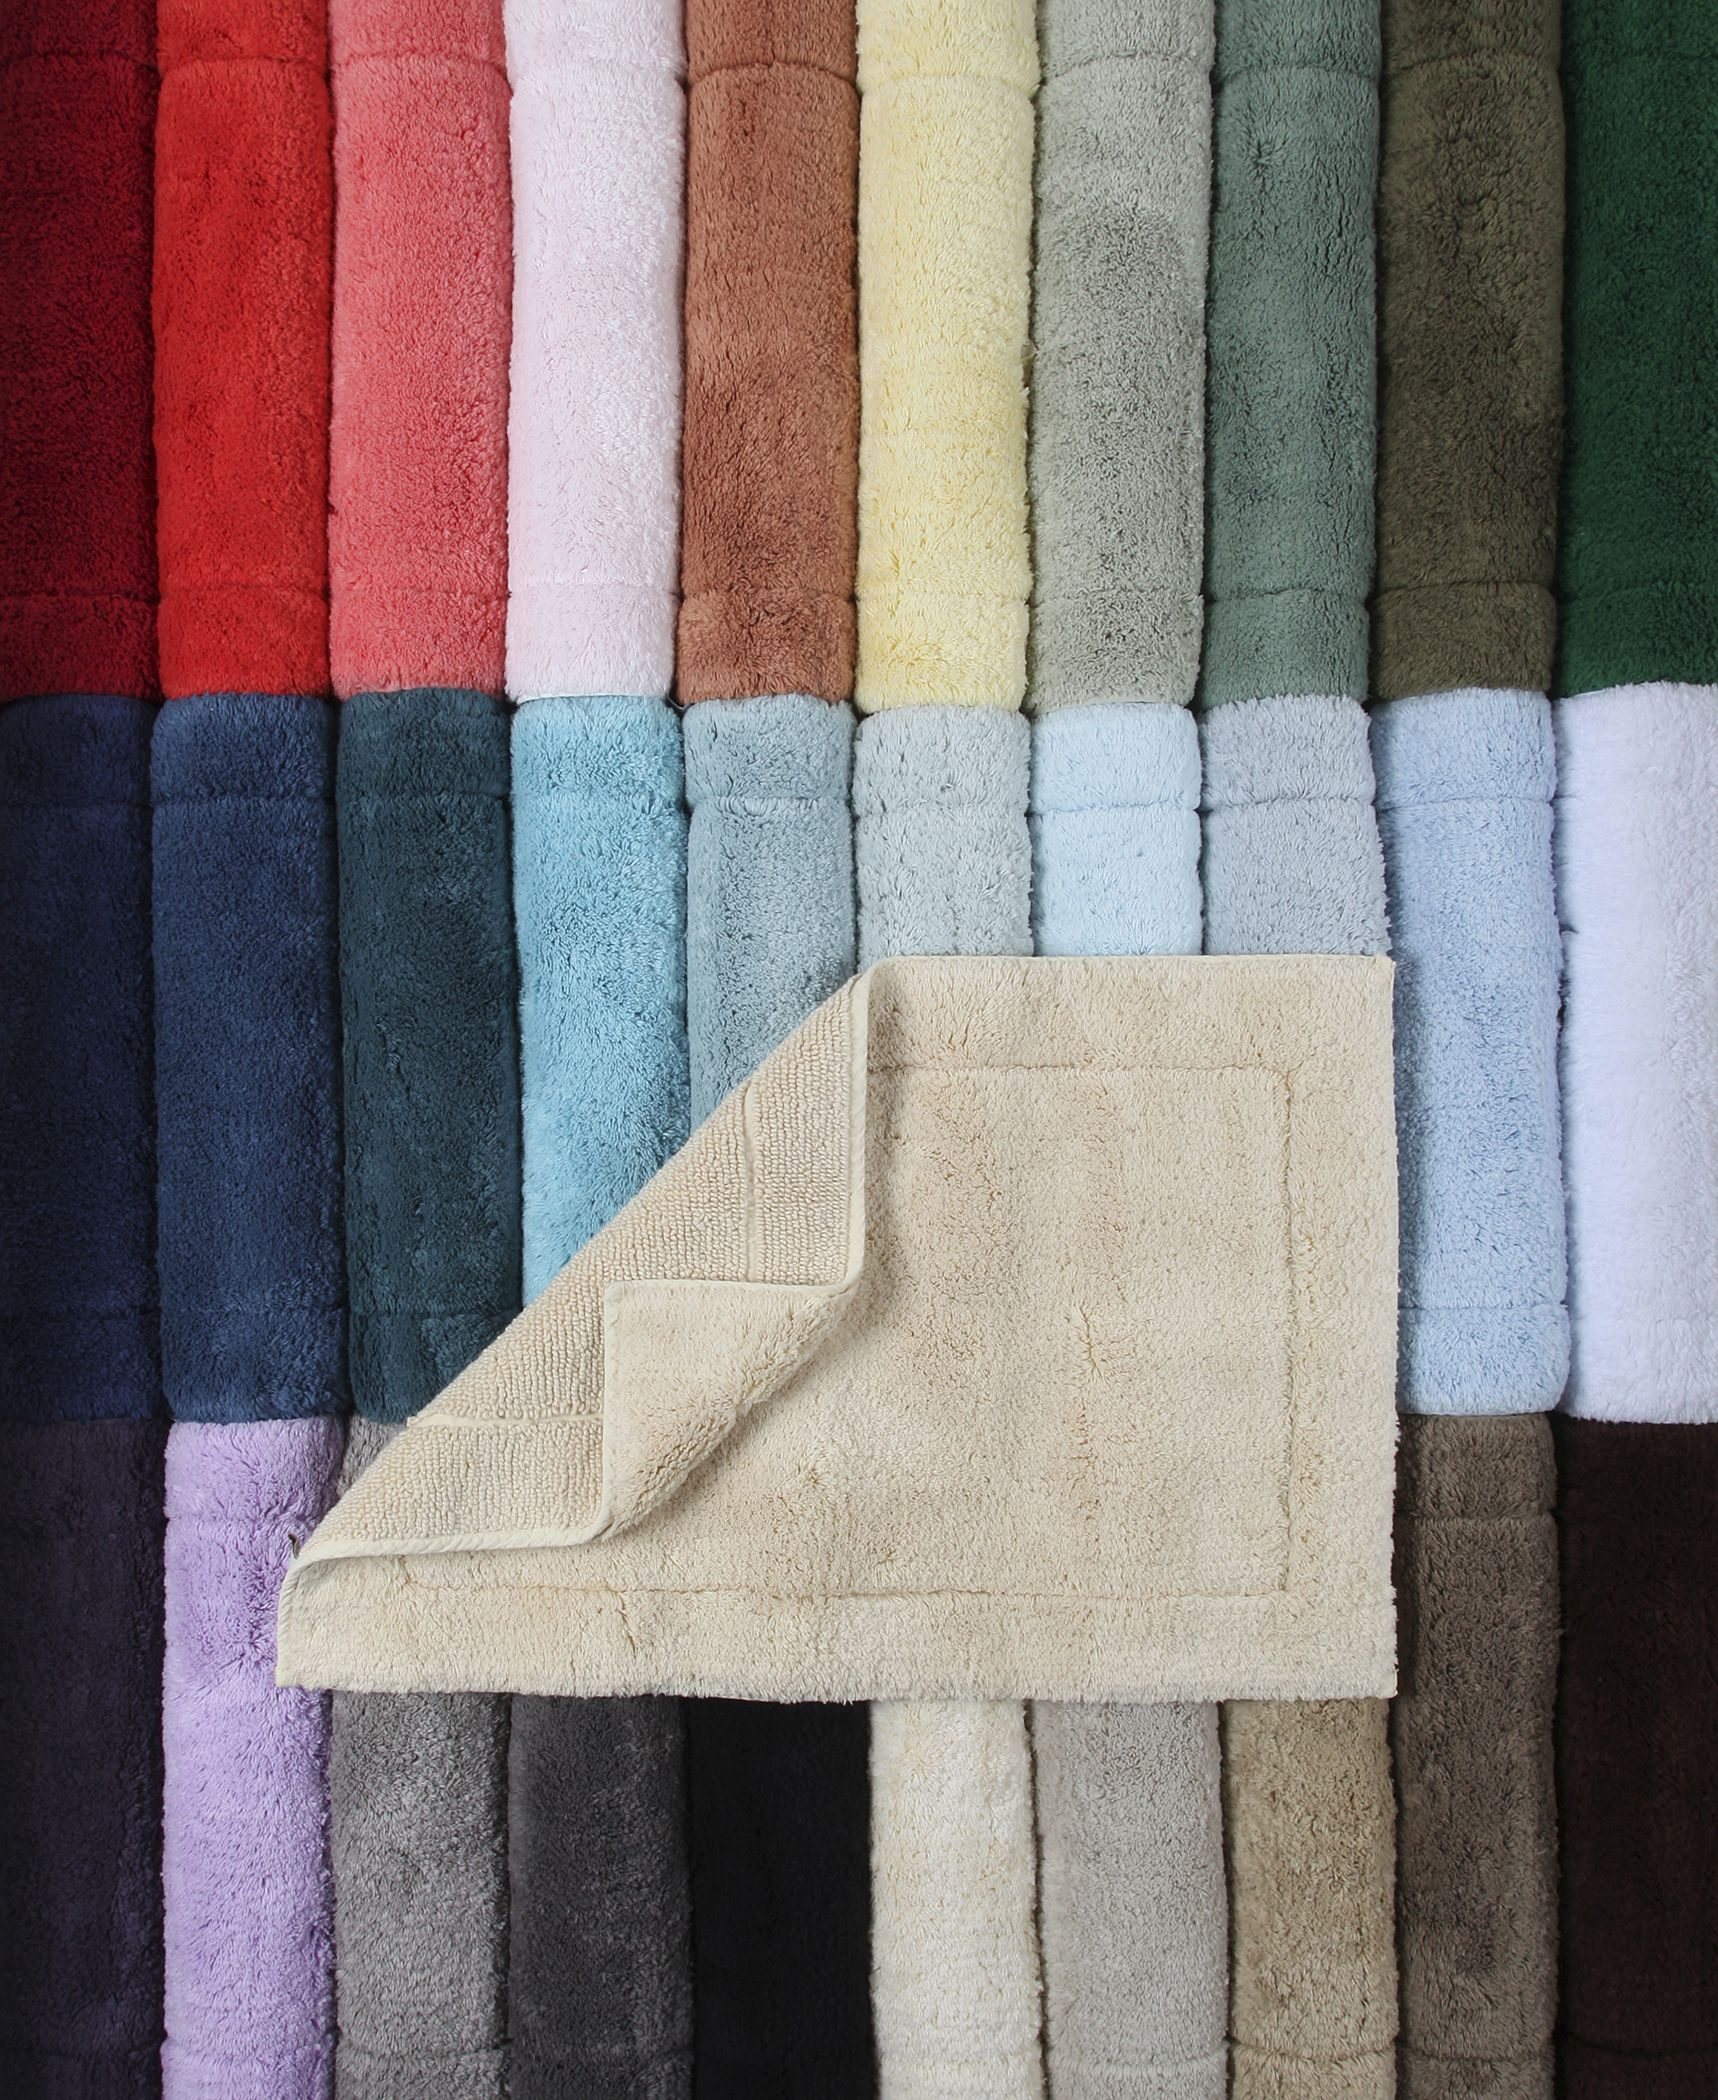 Crafted in a century-old mill in Portugal, this reversible bath rug provides incomparably soft, cushioned comfort.